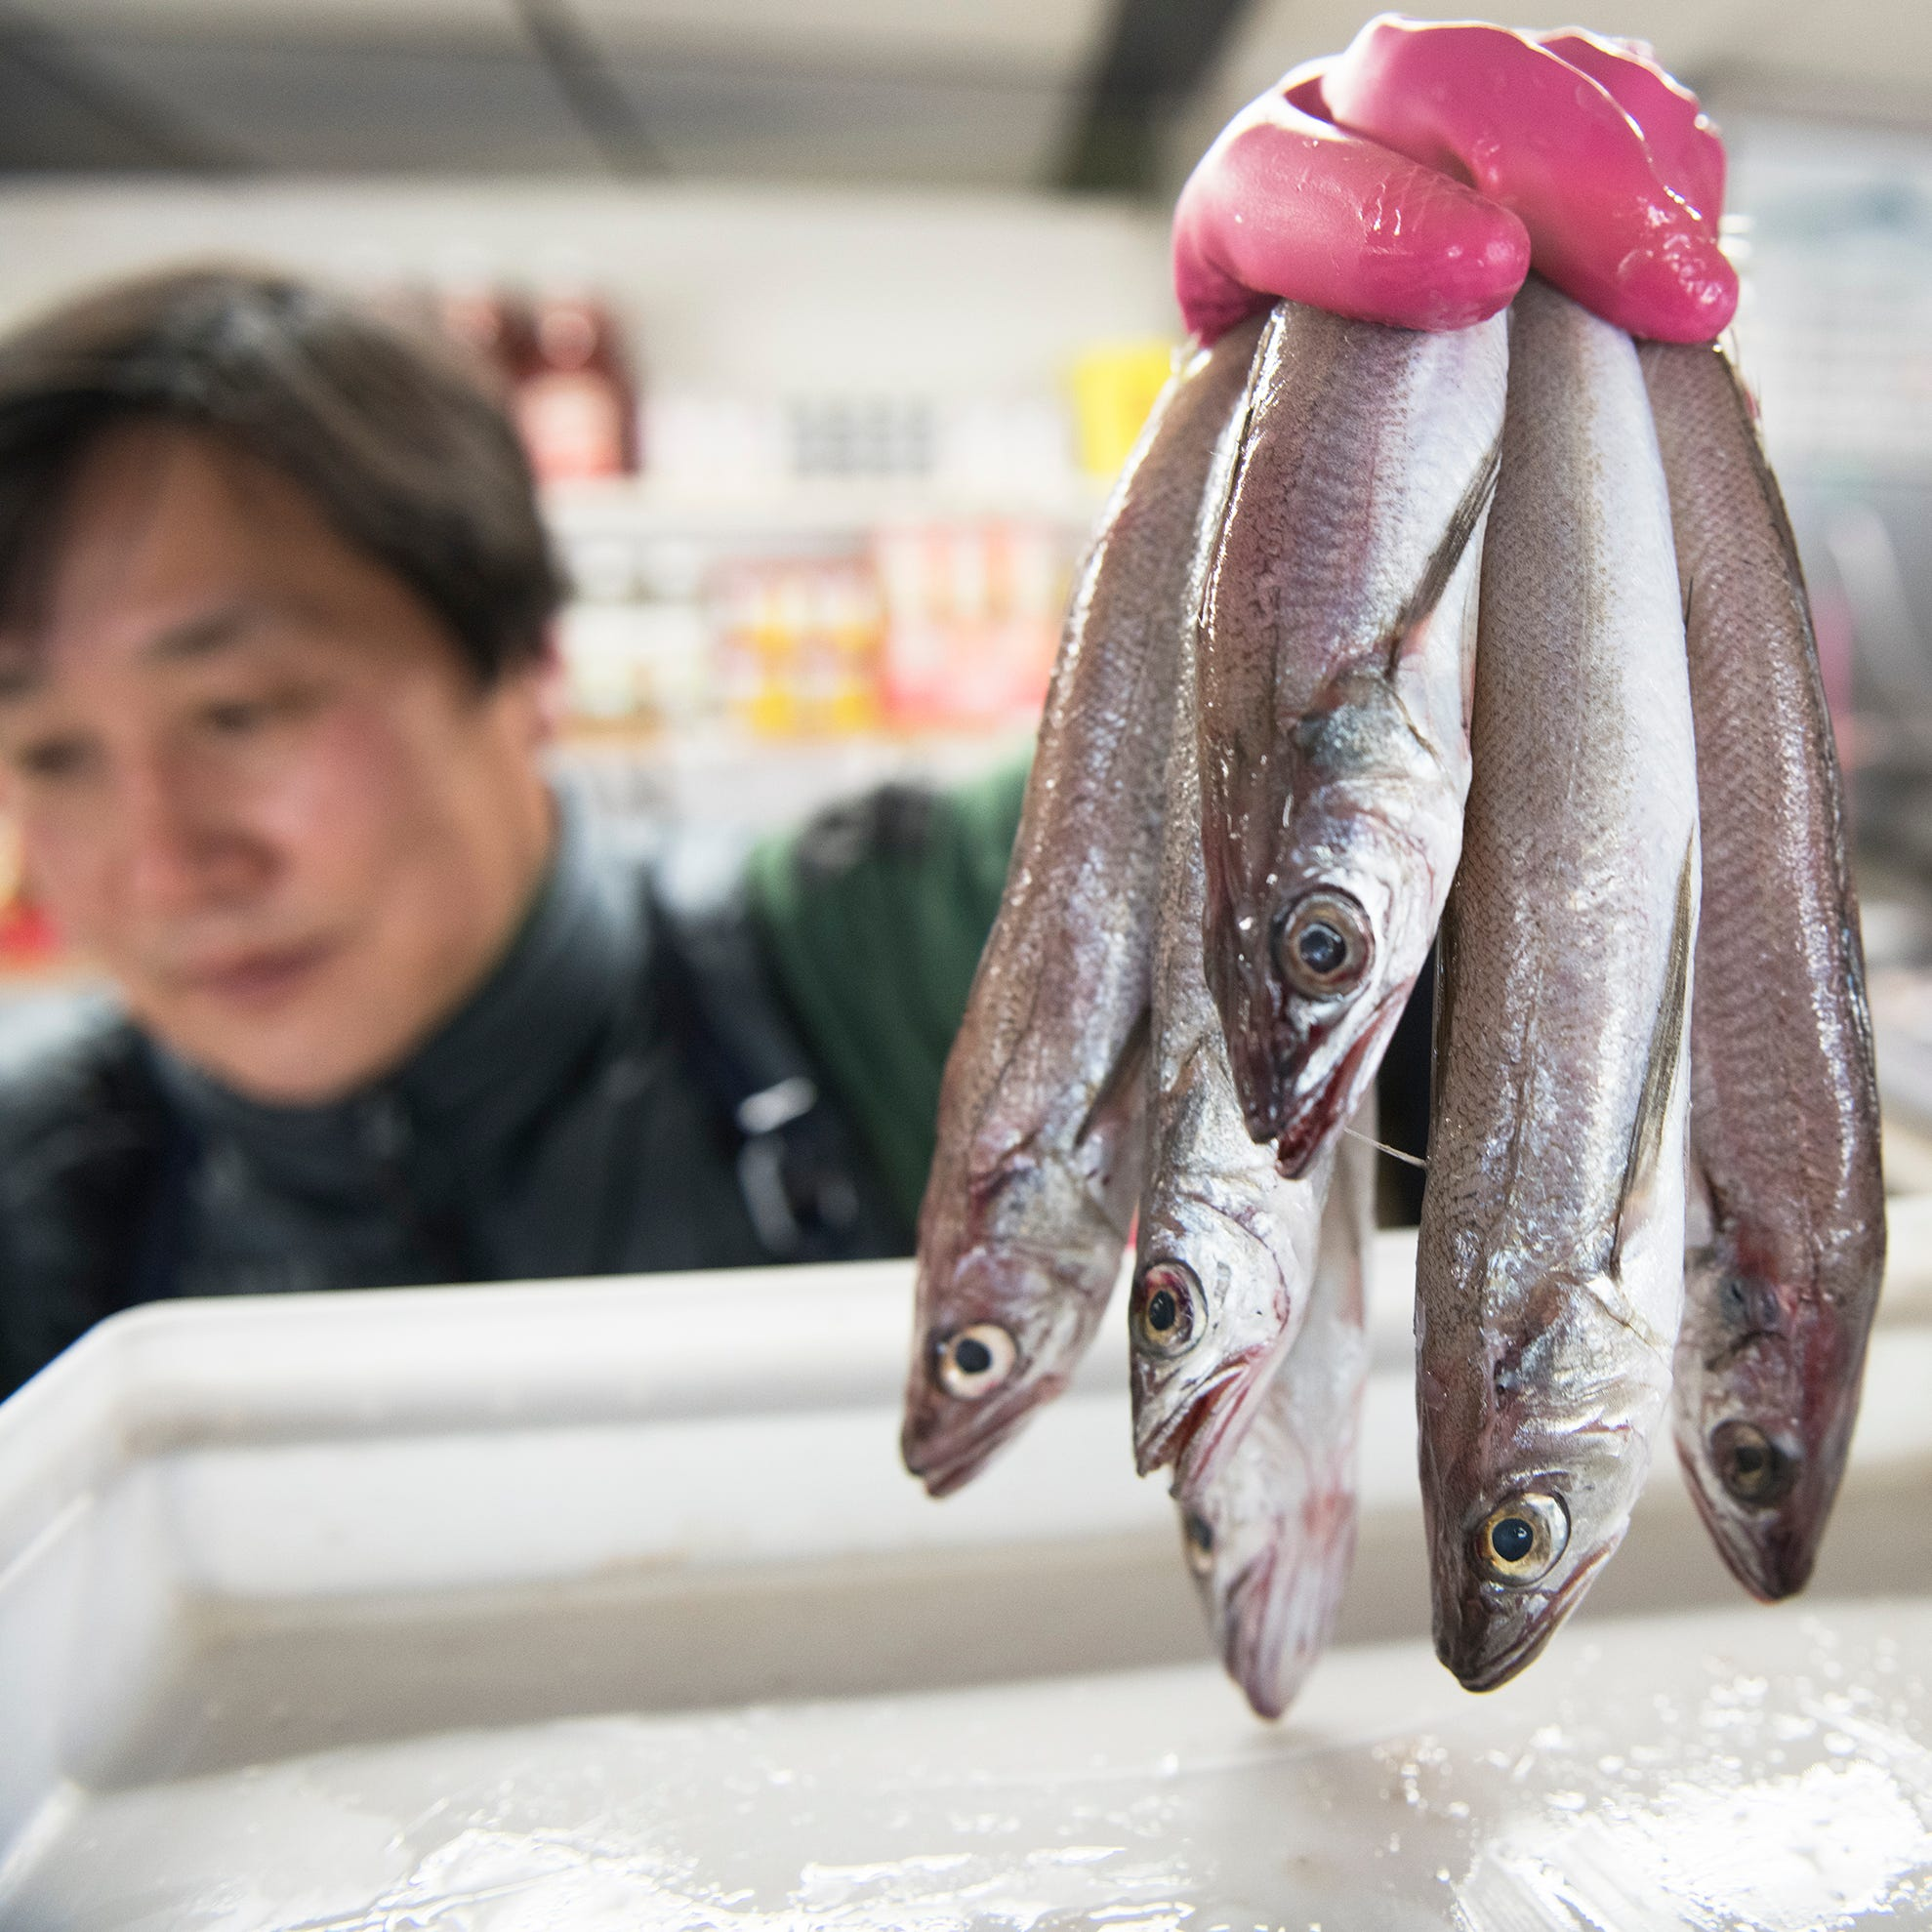 Seafood tips the scales of South Jersey seafood shops during Lent